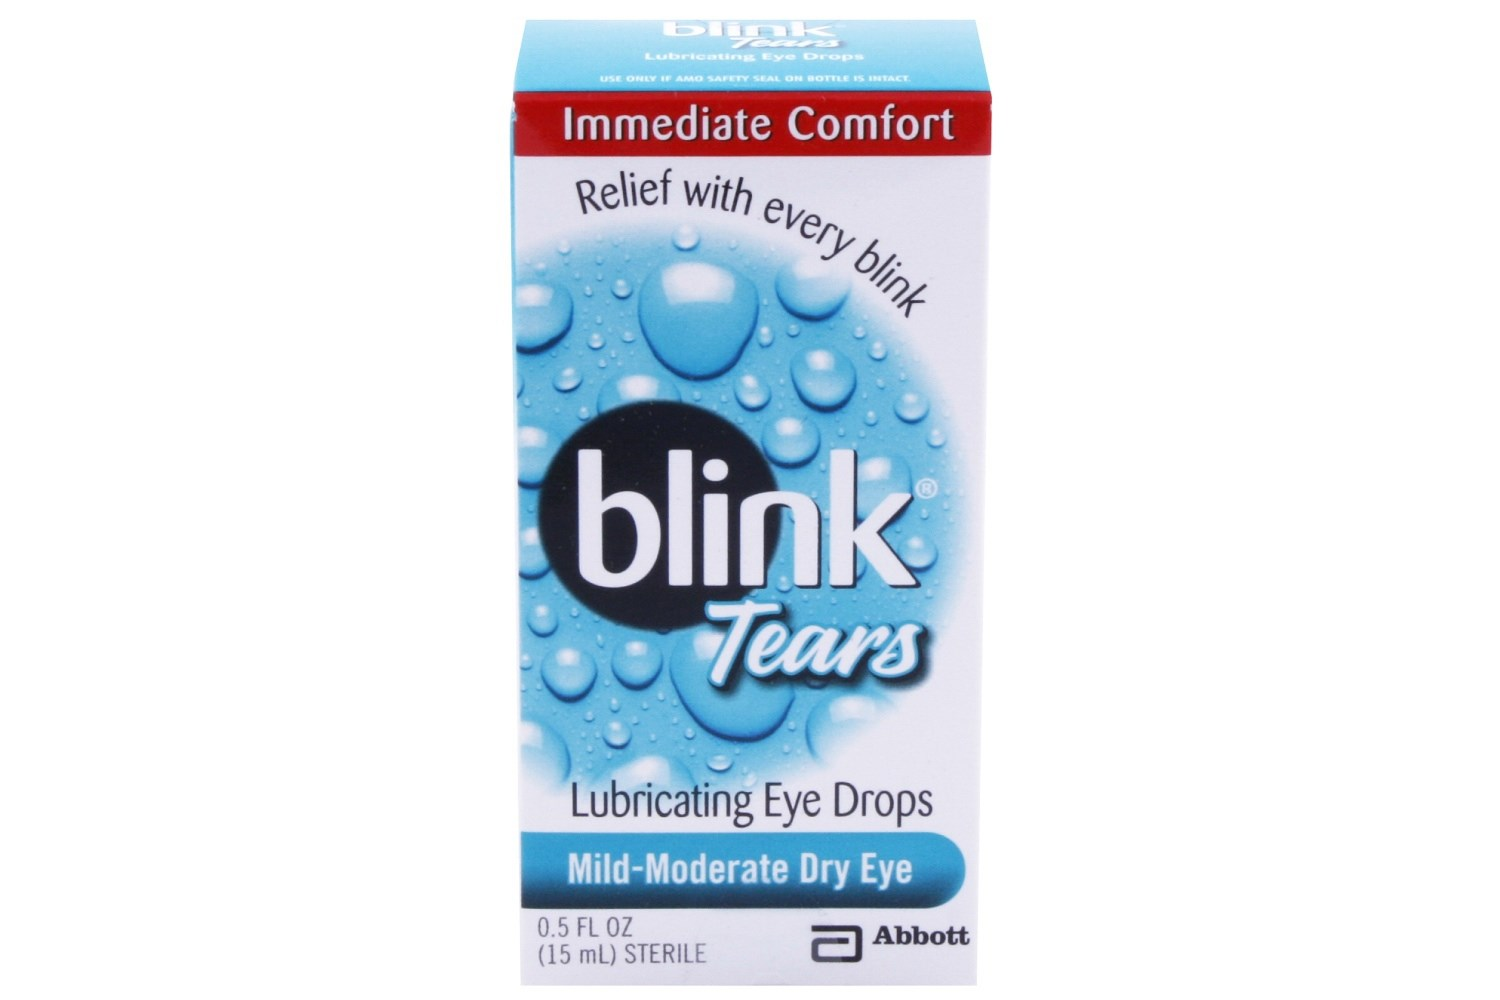 Blink Tears Eye Drops 5 fl oz